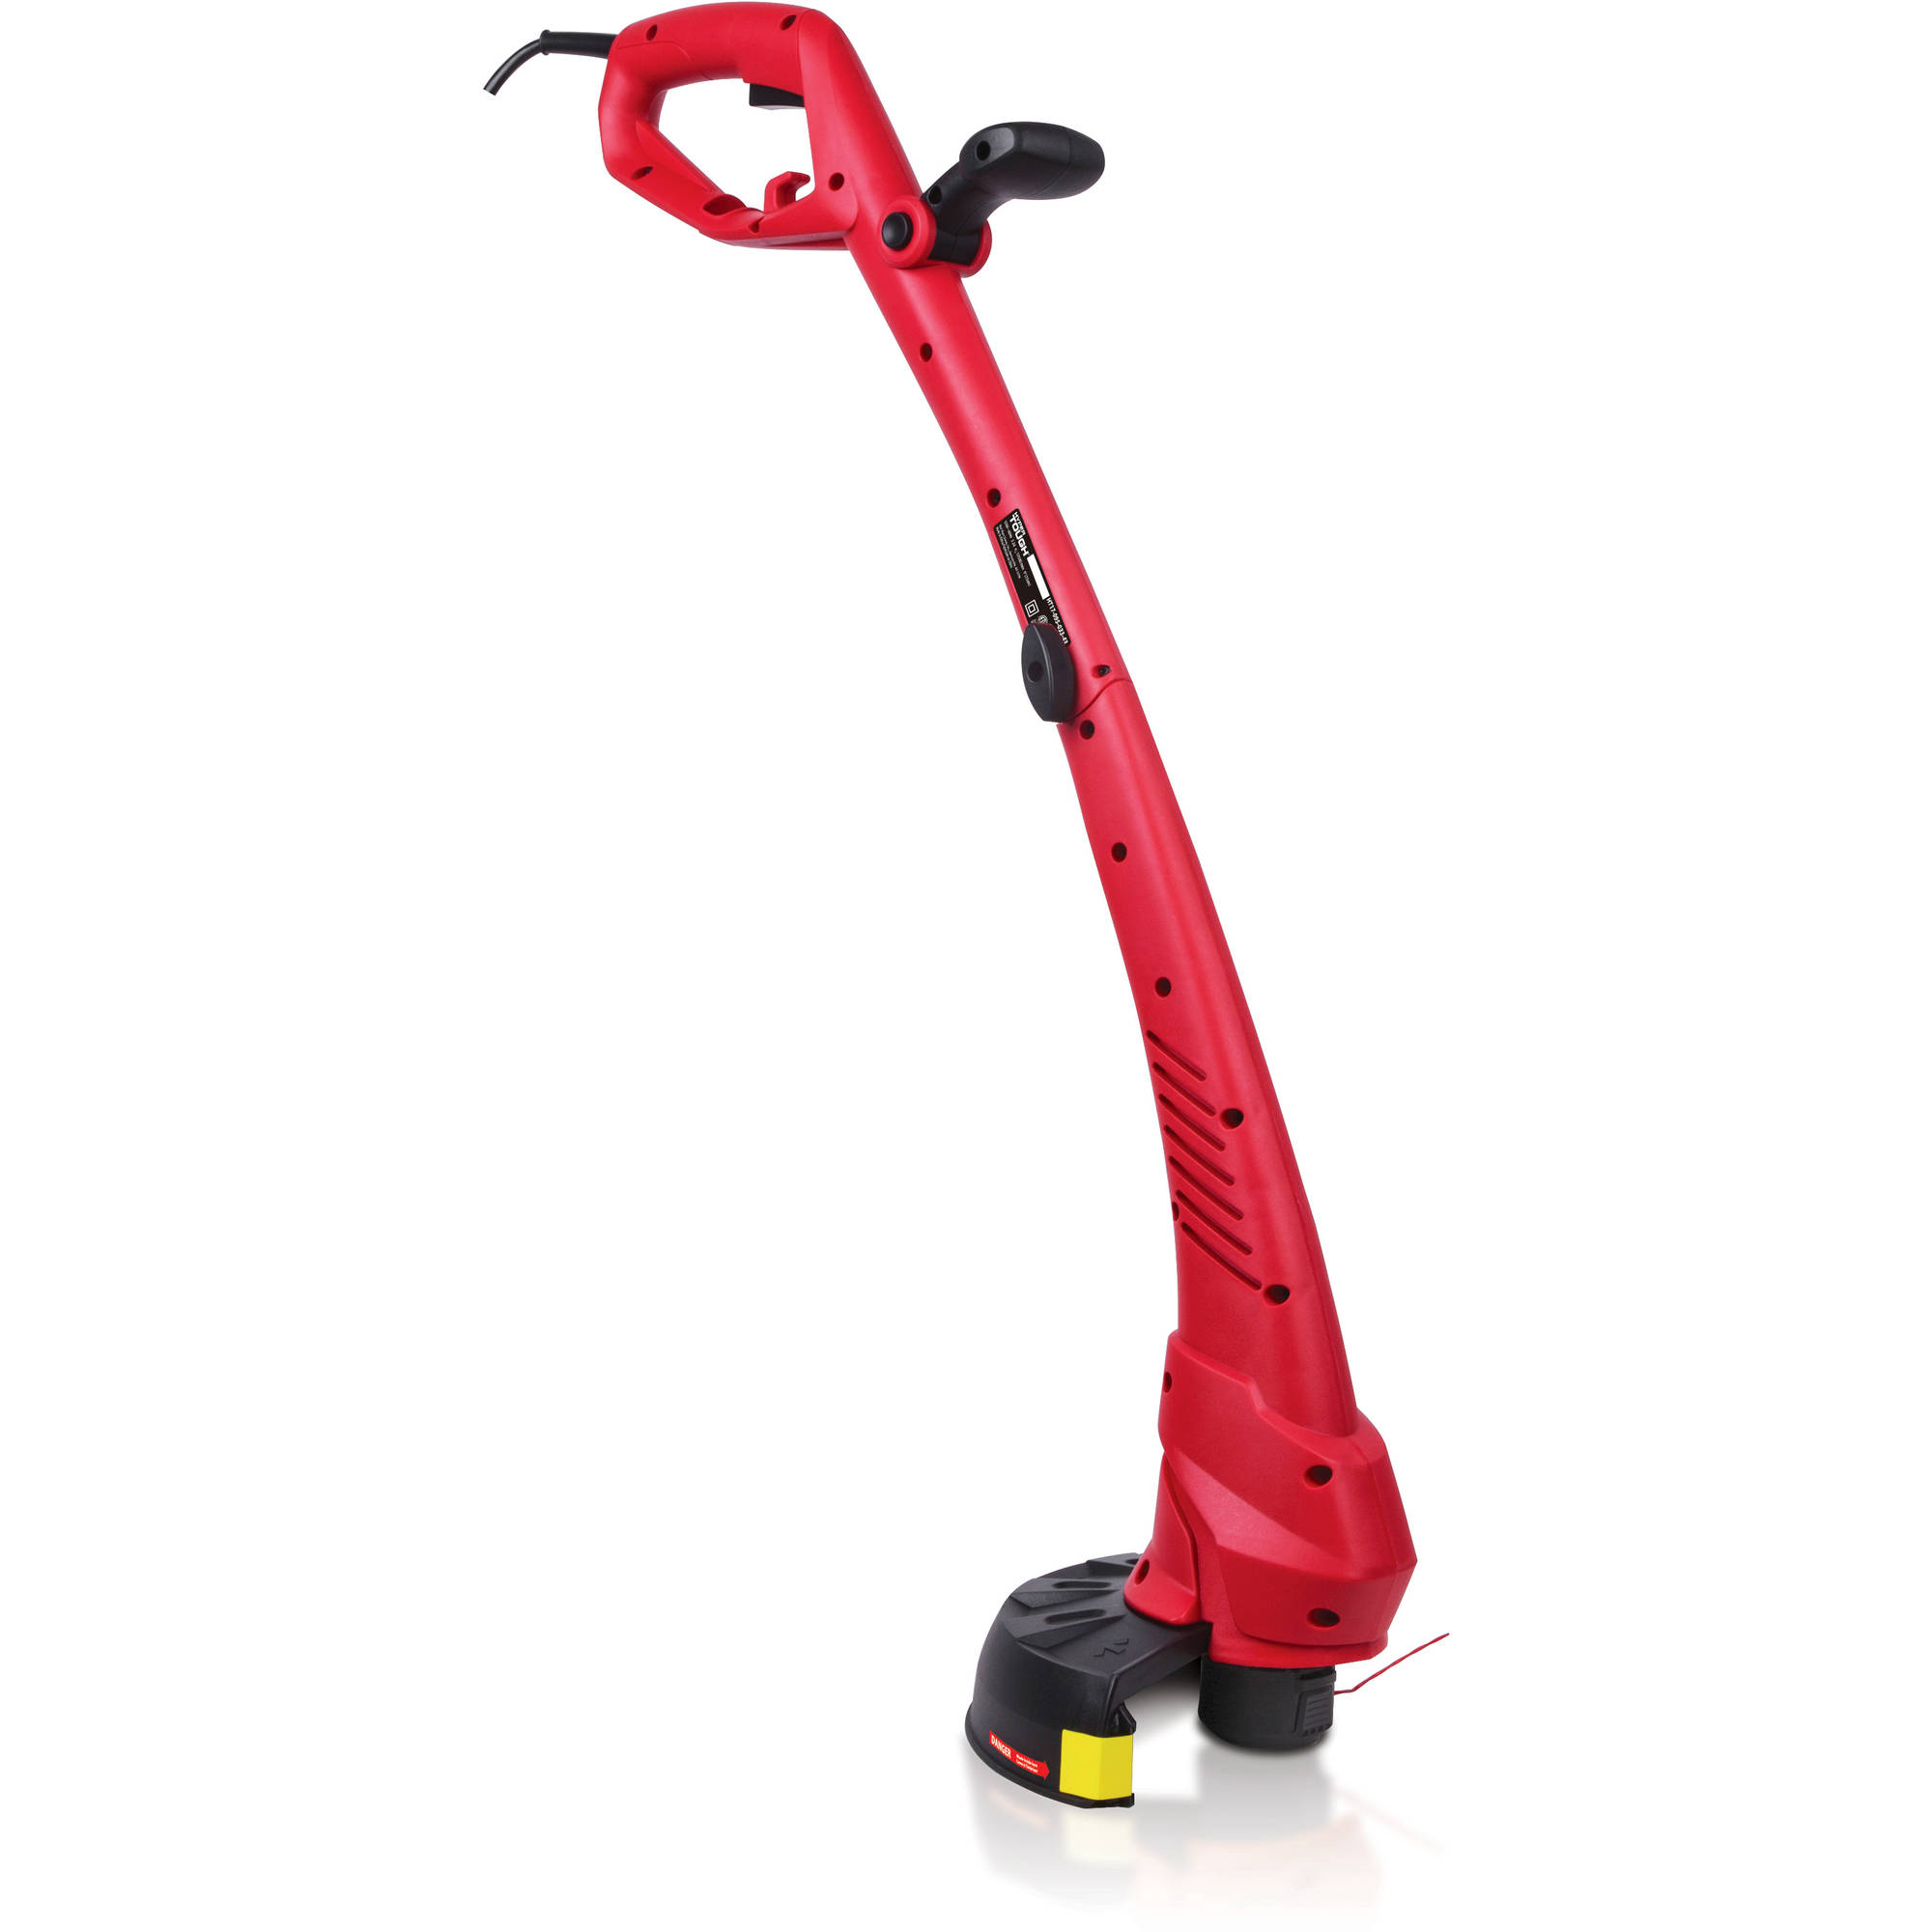 Hyper Tough 2.2Amp 9in. Grass Trimmer by Generic